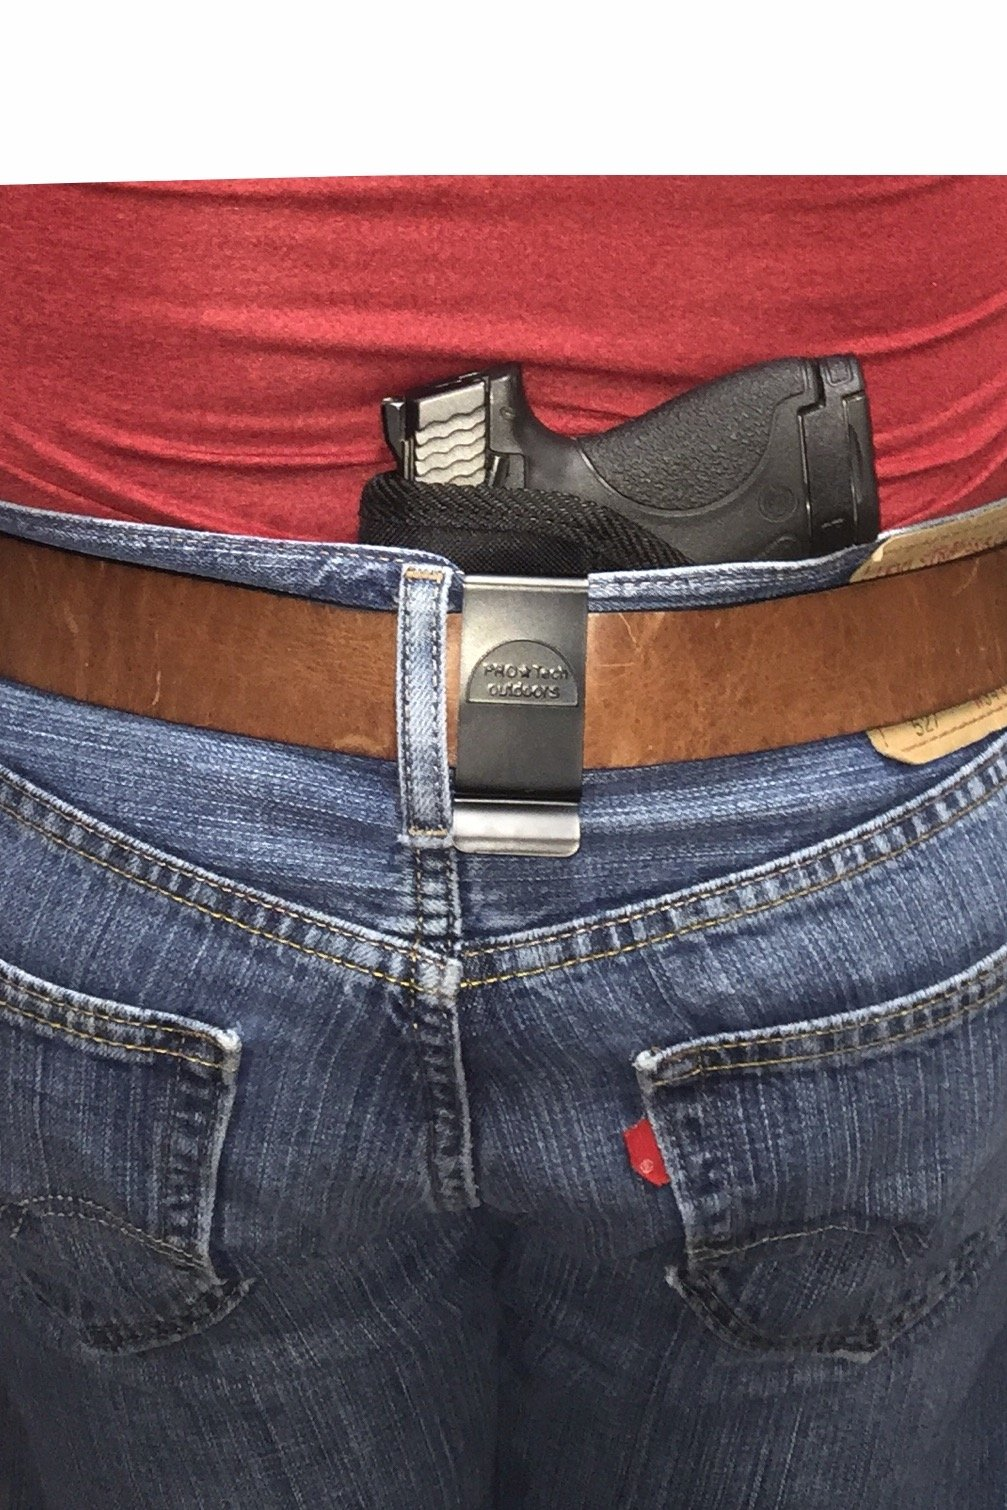 Pro-Tech Outdoors Concealed In the Pants/waistband Holster Fits Glock 17,19,20,21,22,23,25,26,27,28,29,30,31,32,33,36,38,39,40,41,42 by Pro-Tech Outdoors (Image #1)